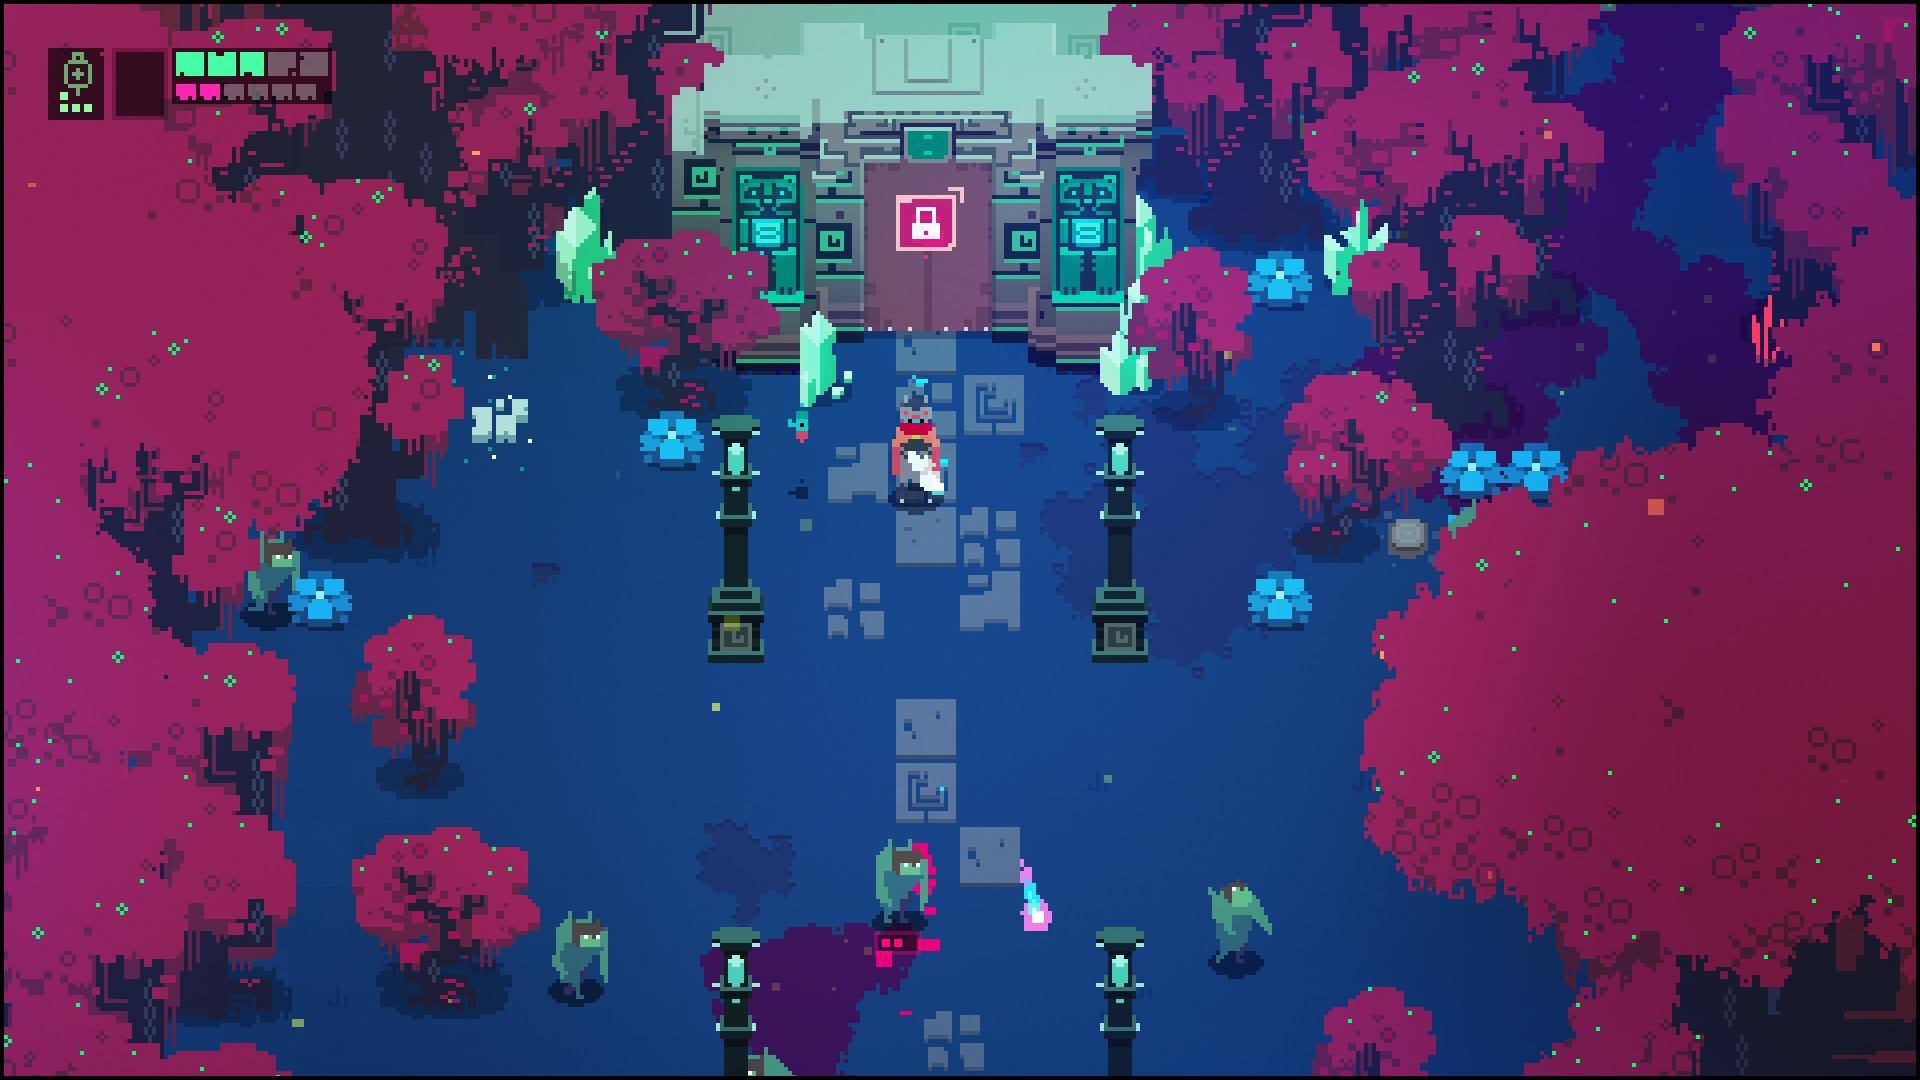 Most Viewed Hyper Light Drifter Wallpapers 4k Wallpapers